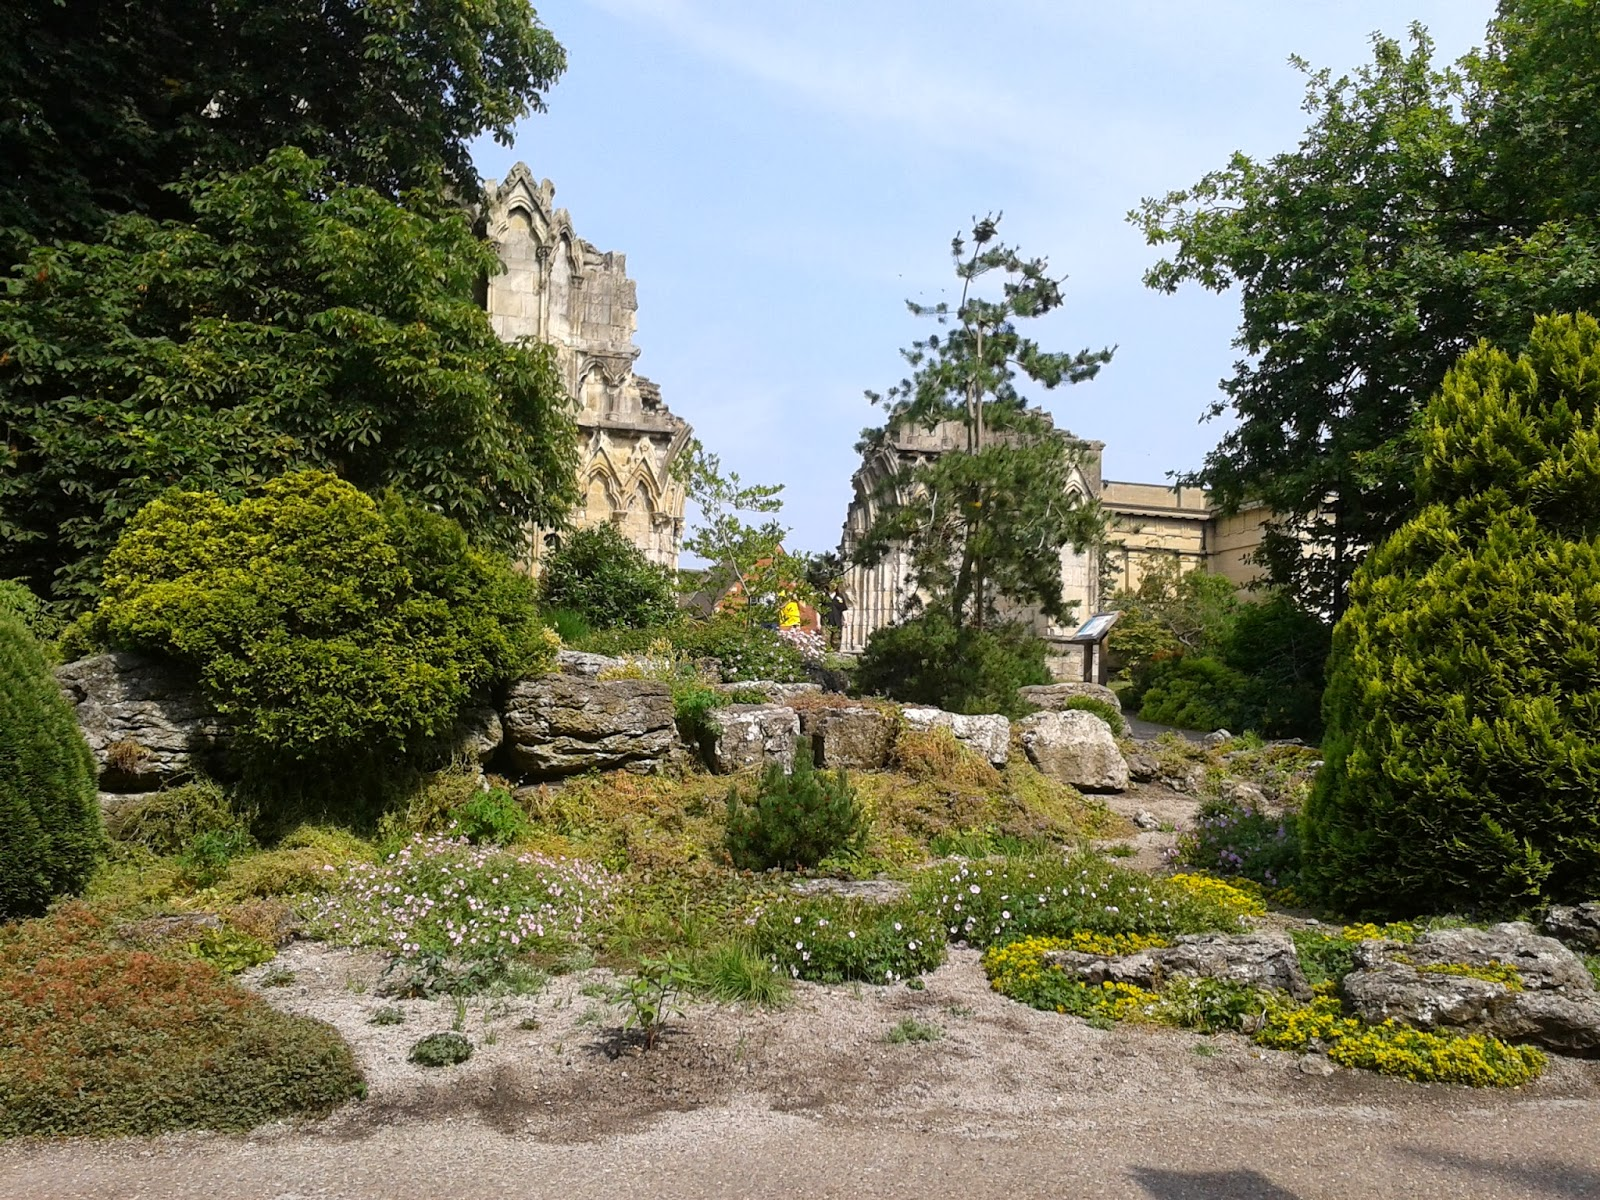 Garden and ruined church in York England